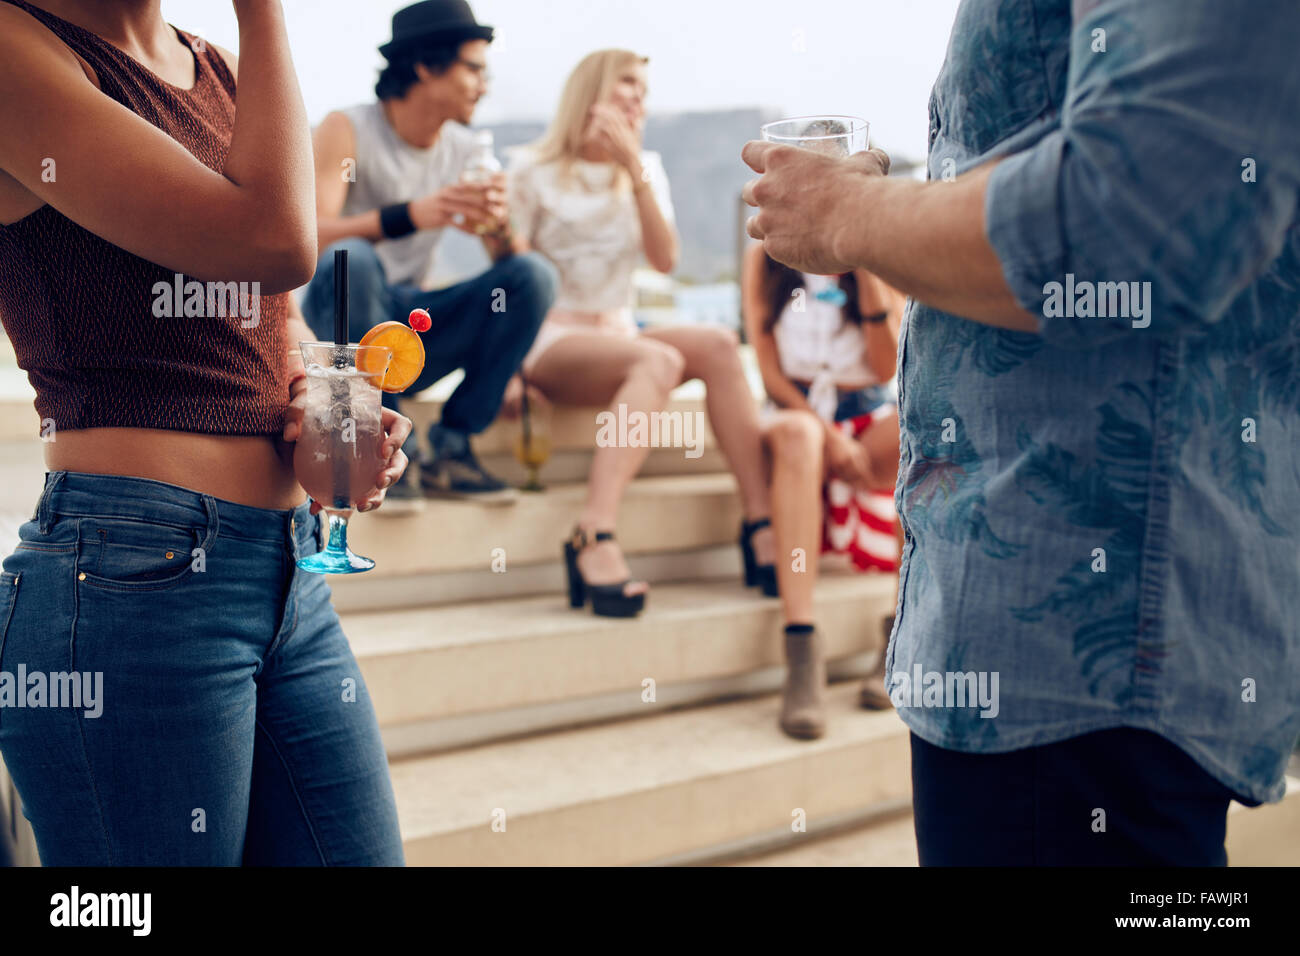 Cropped shot of a couple holding cocktails glasses while three people talking to each other in the background. Young - Stock Image